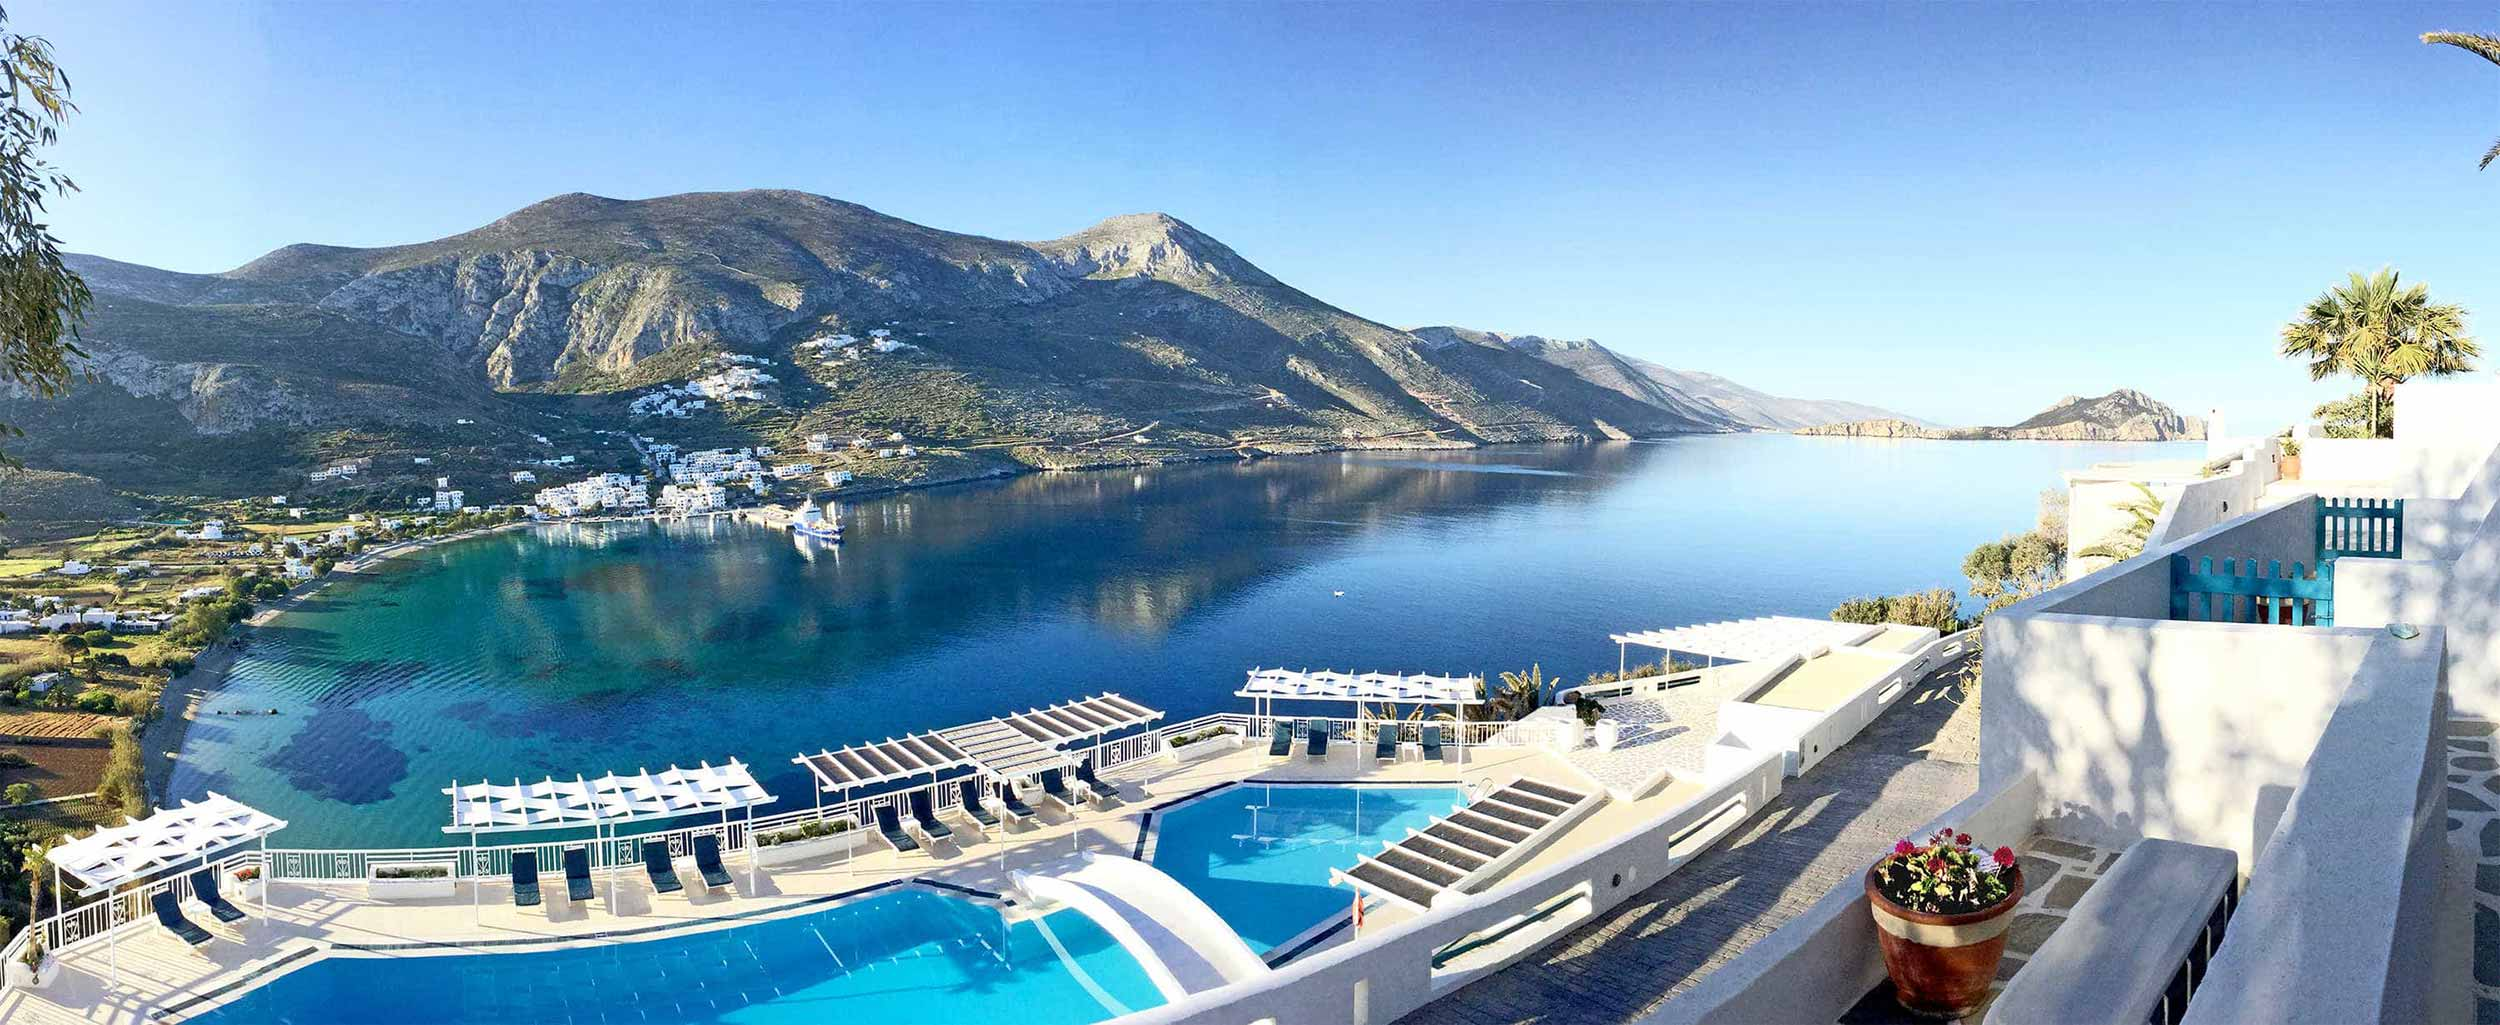 aegialis-hotel-and-spa-aegean-greece-6